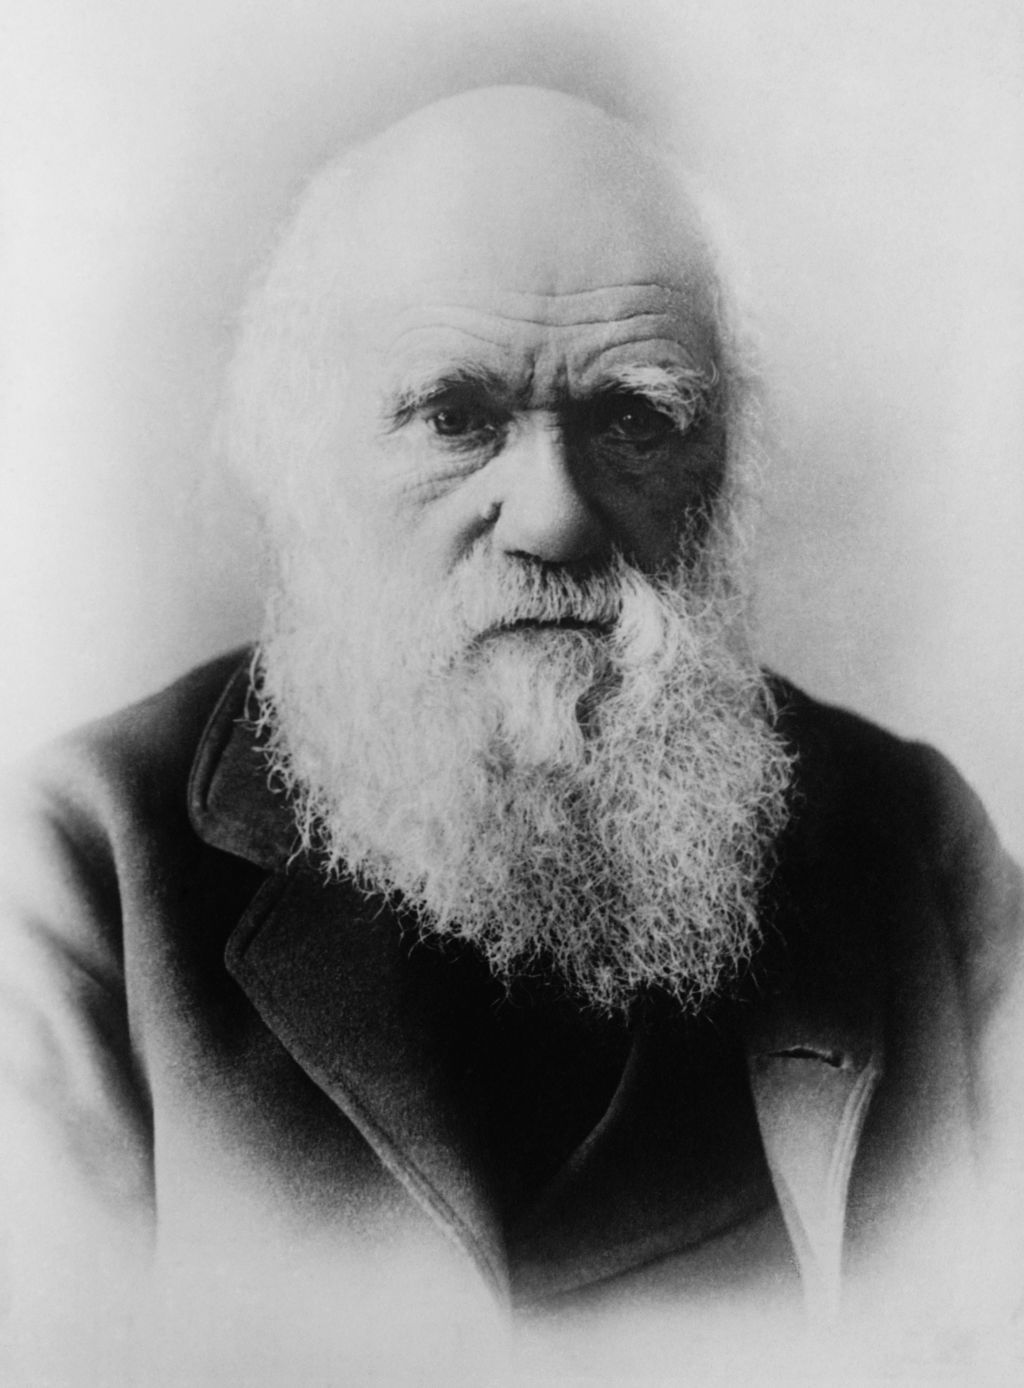 reverend brown inherit the wind writework charles darwin 1 negative glass 5 x 7 in or smaller